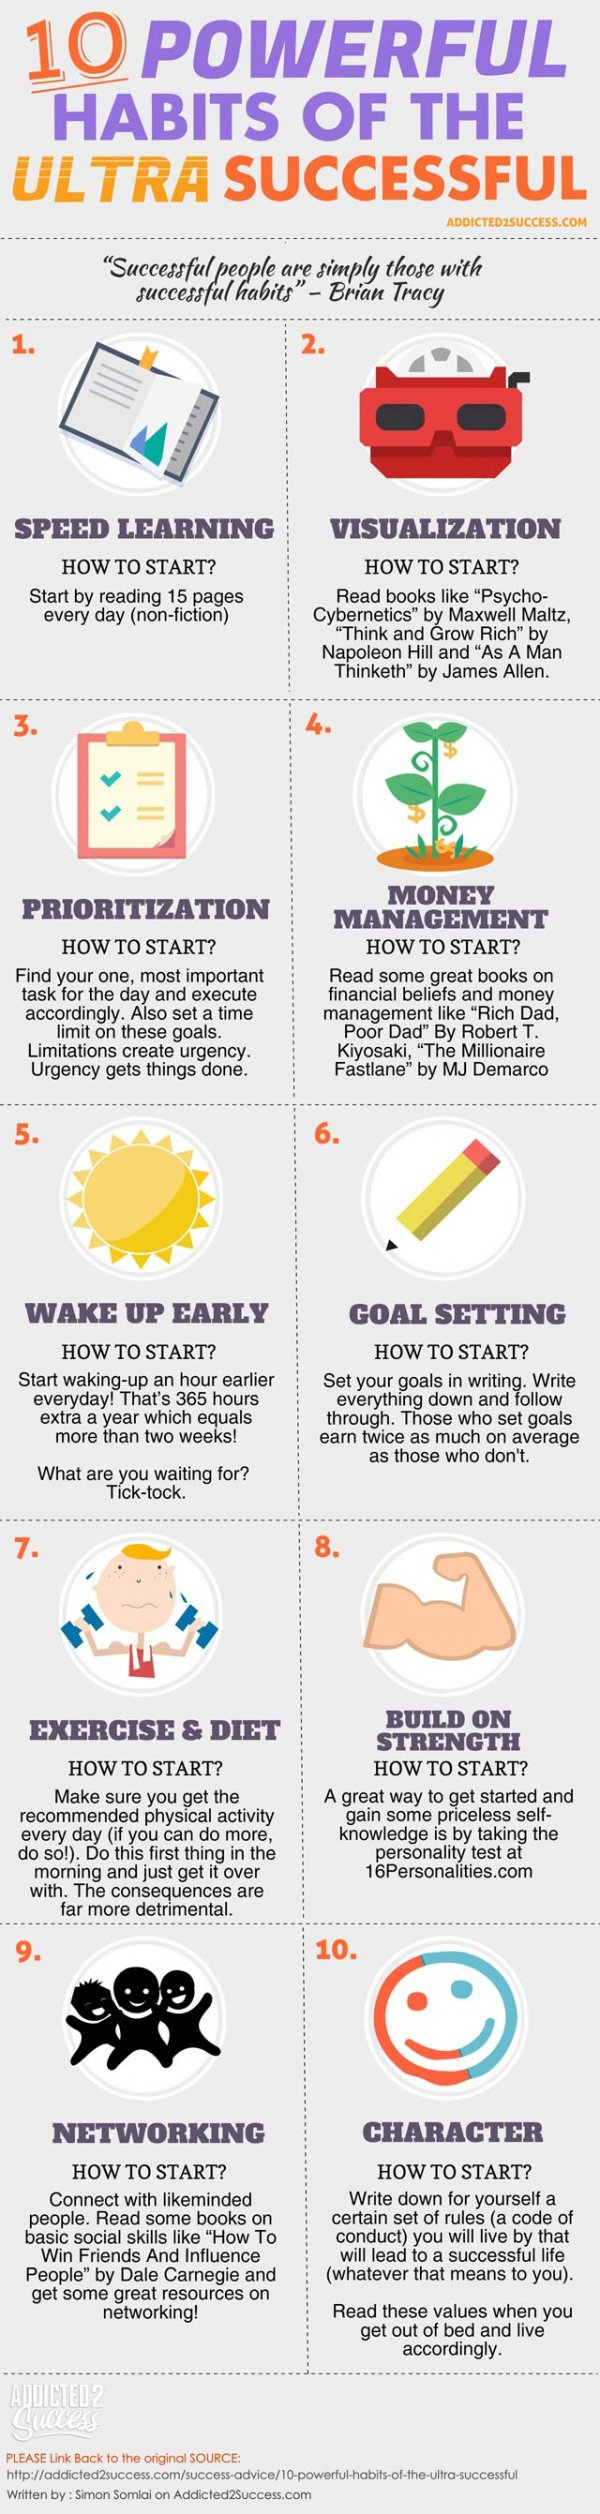 10 Powerful Habits of the Ultra Successful